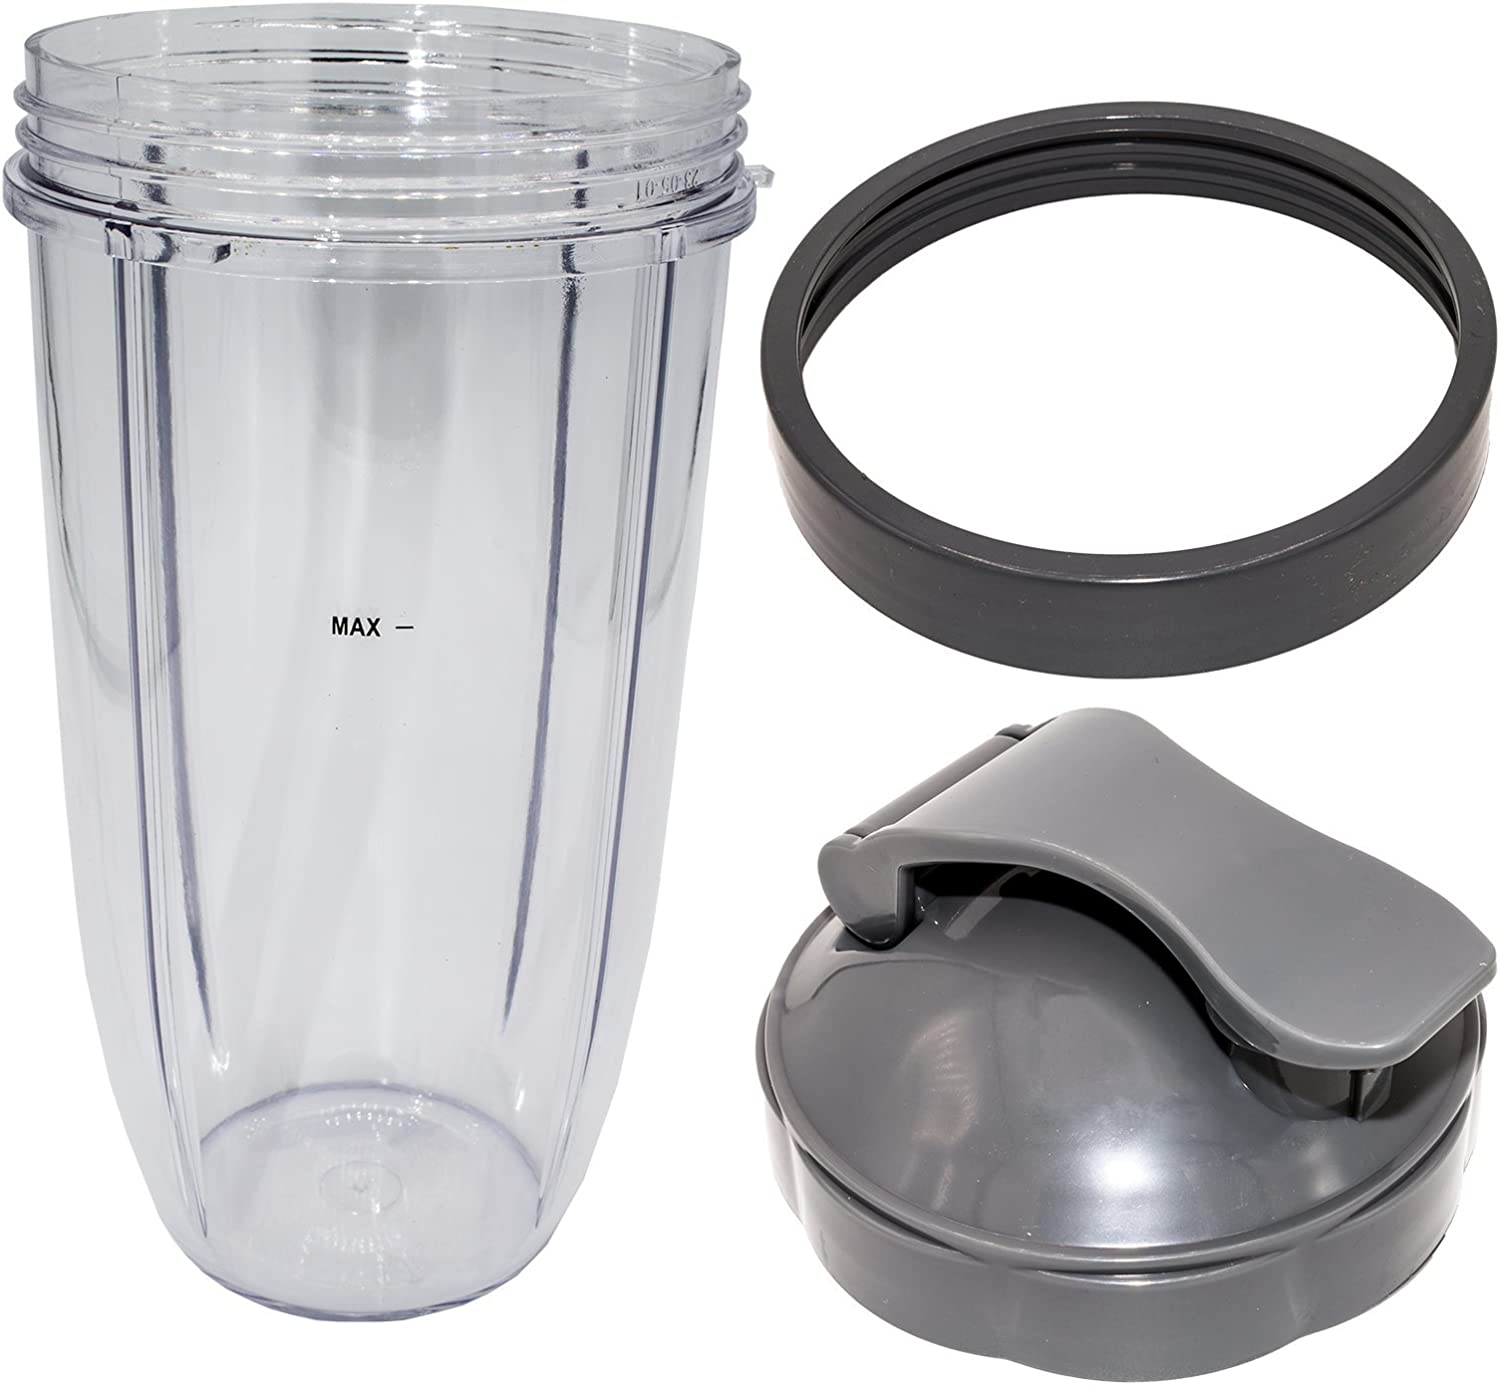 Blendin 32 Ounce Large Cup with Flip Top To-Go Lid and Jar Lip Ring, Compatible with Nutribullet 600W 900W Blender Juicer